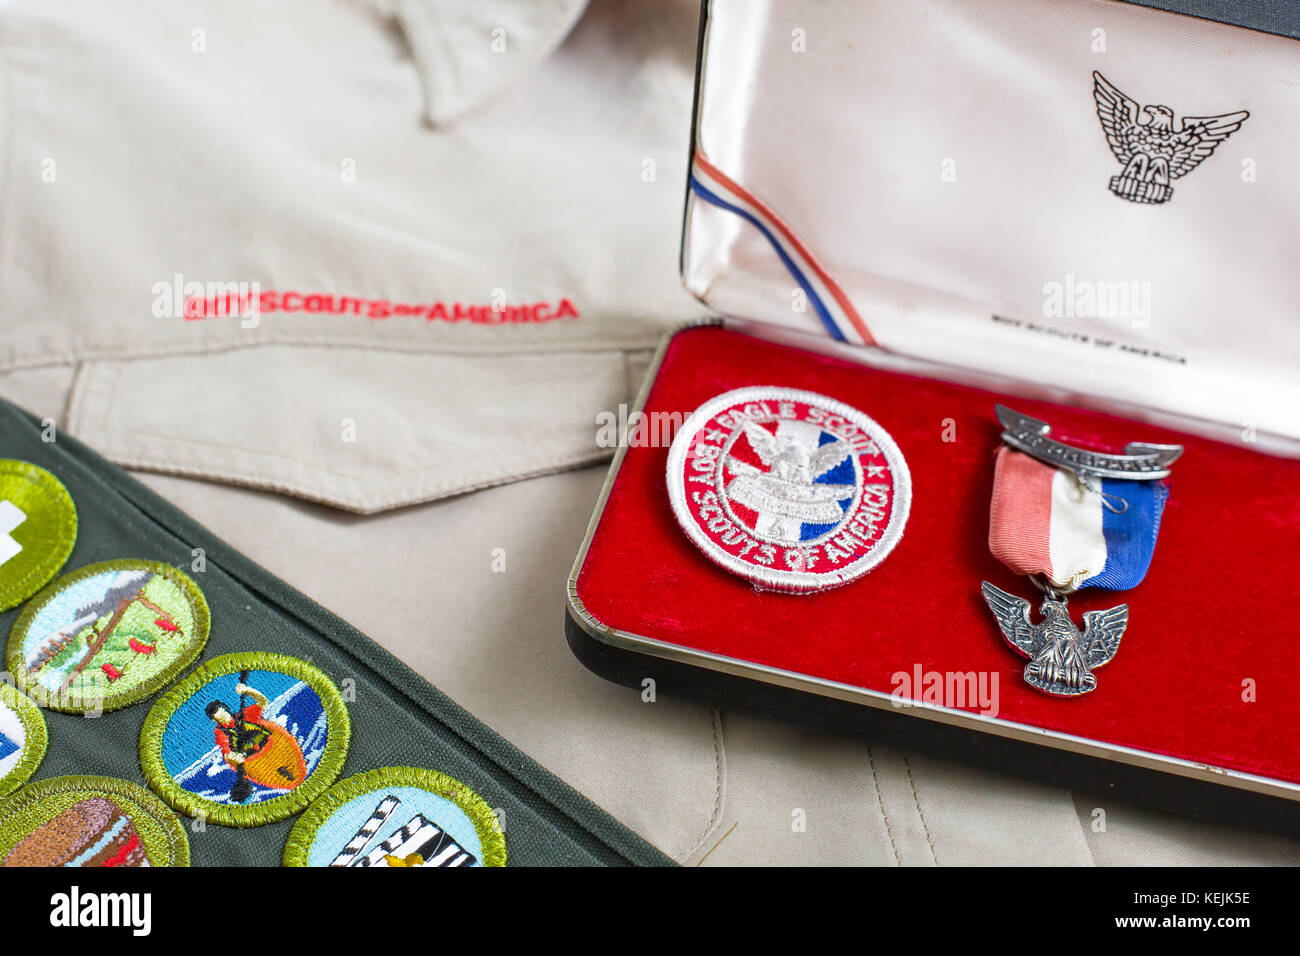 Boy scout eagle pin and patch with khaki uniform shirt and merit badge sash - Stock Image